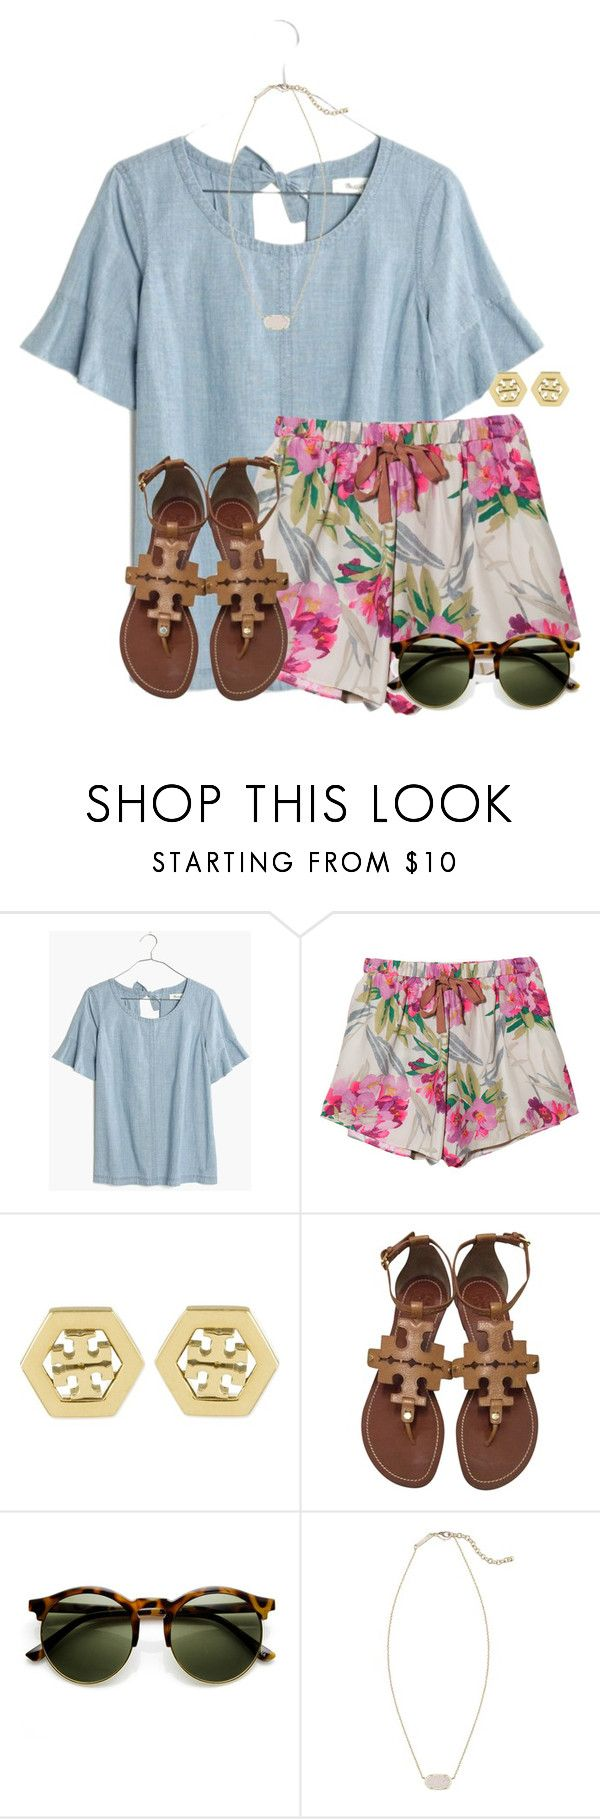 """""""~s h i n e~"""" by flroasburn ❤ liked on Polyvore featuring Madewell, Elizabeth and James, Tory Burch and Kendra Scott"""